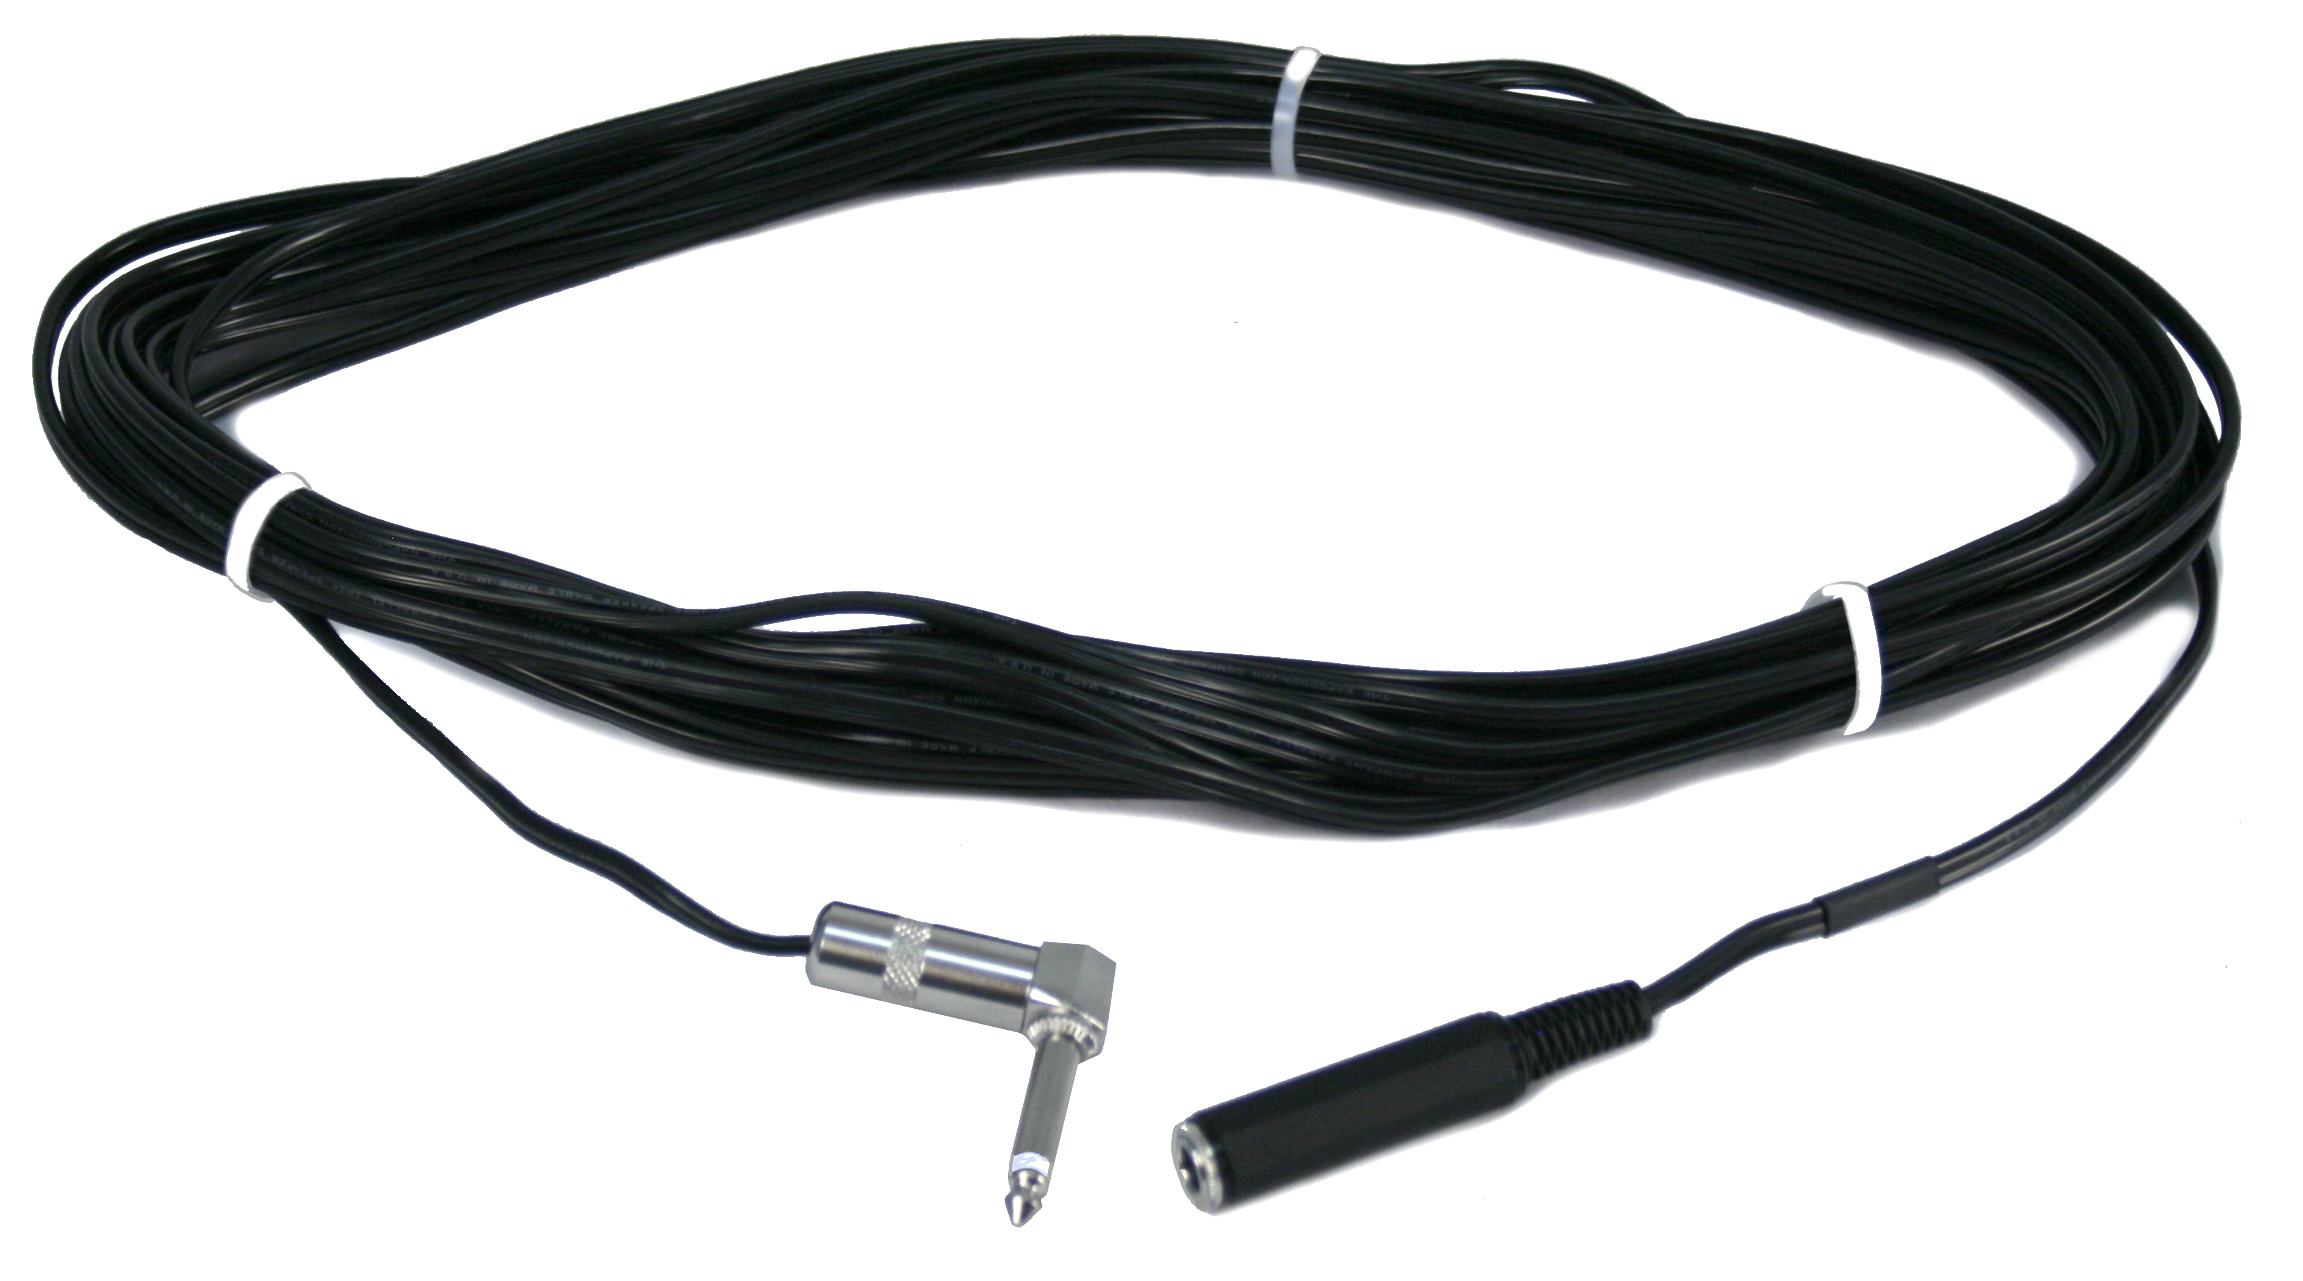 AmpliVox S1780 40ft. Speaker Extension Cable